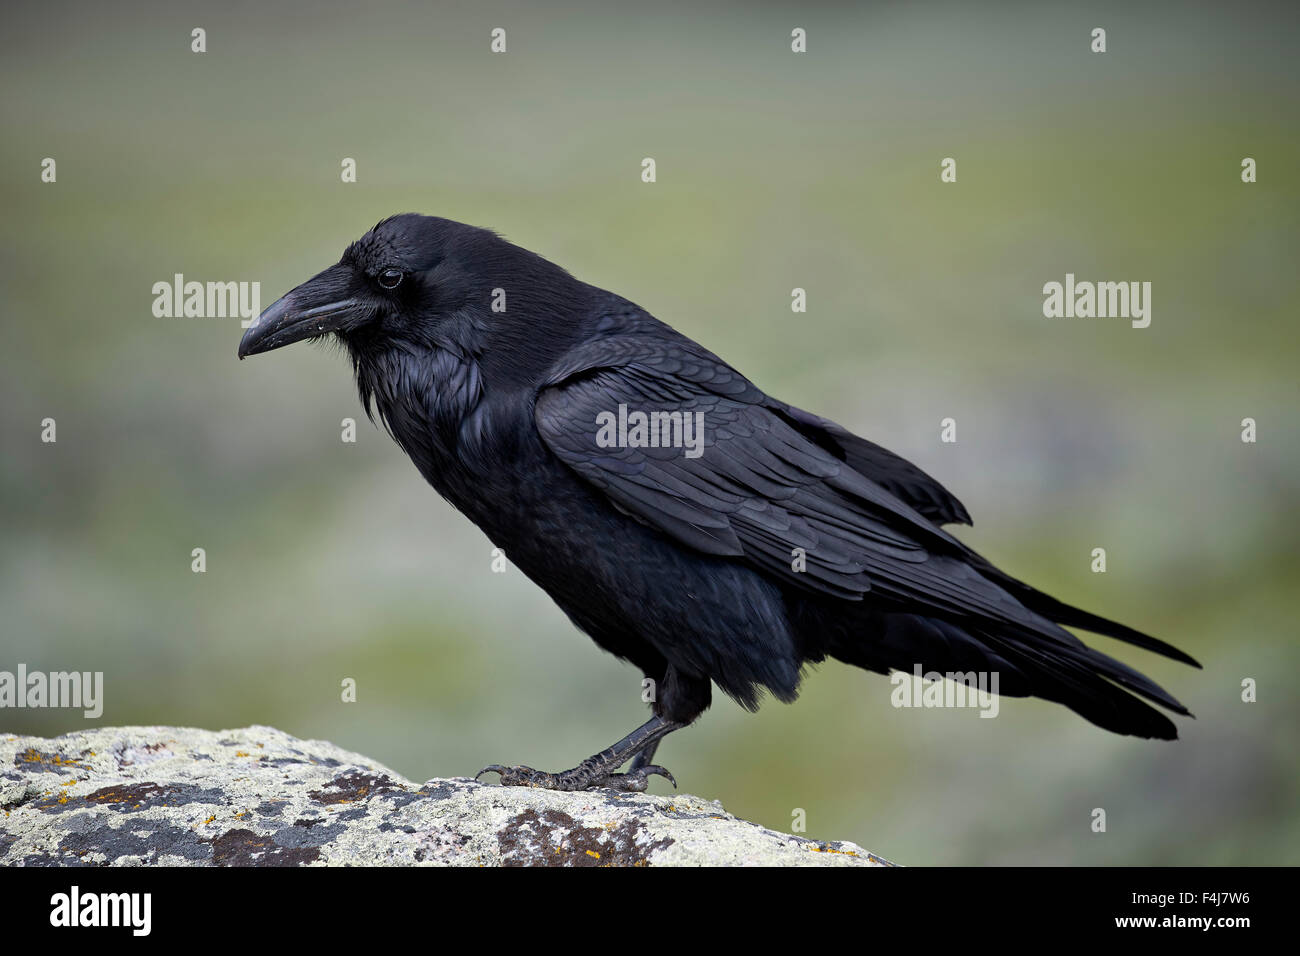 Common Raven Stock Photos & Common Raven Stock Images - Alamy on